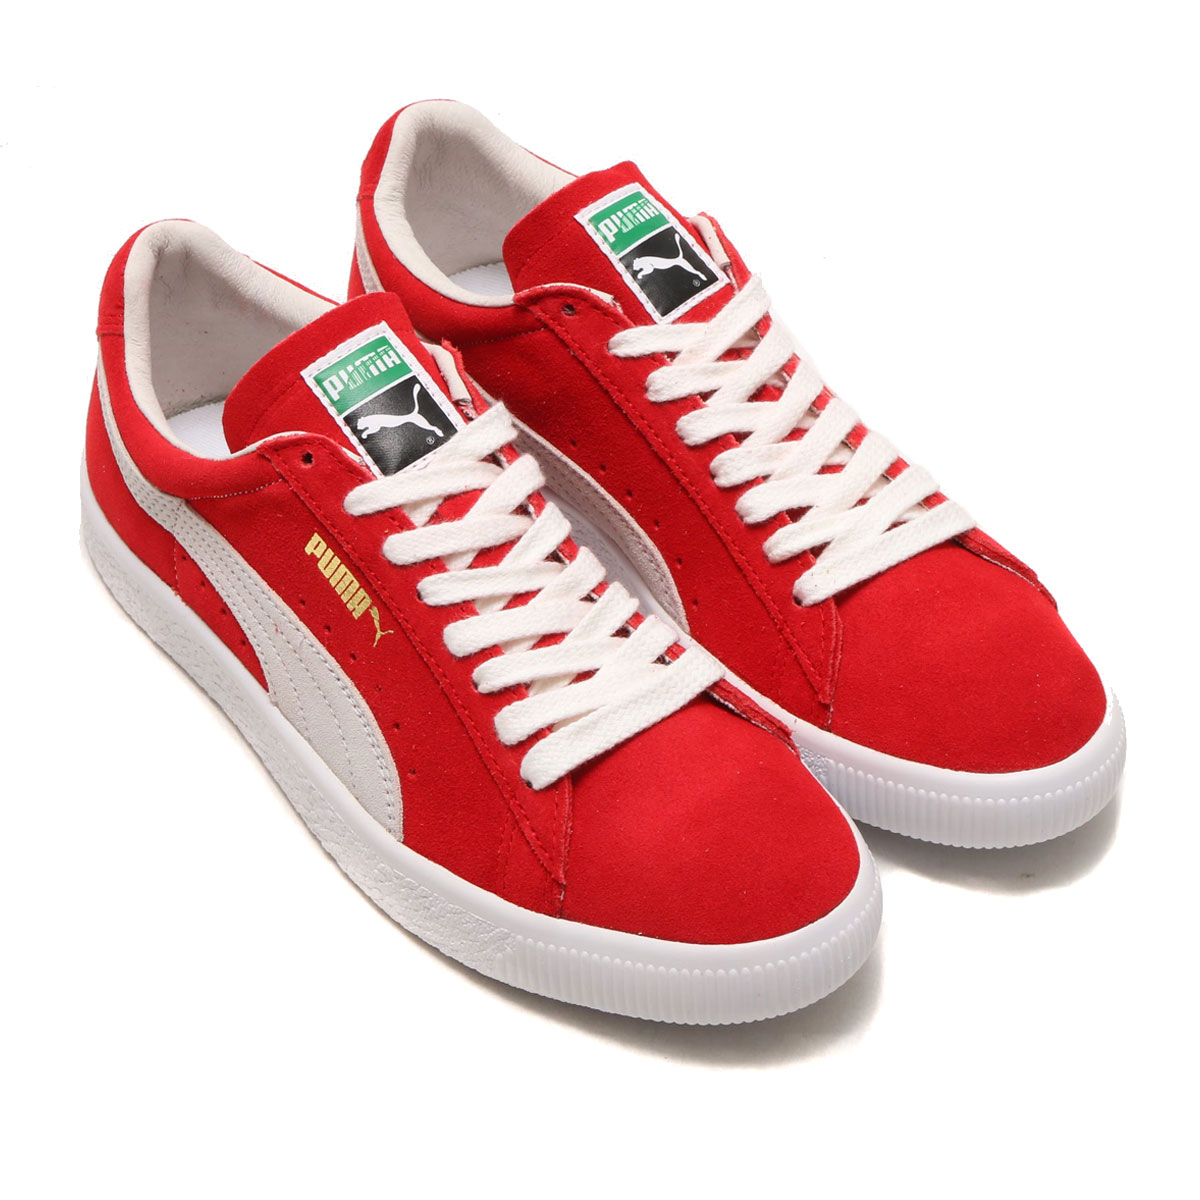 quality design 9b480 5005c PUMA SUEDE 90681 (Puma suede 90681) (RIBBON RED) 18SP-I